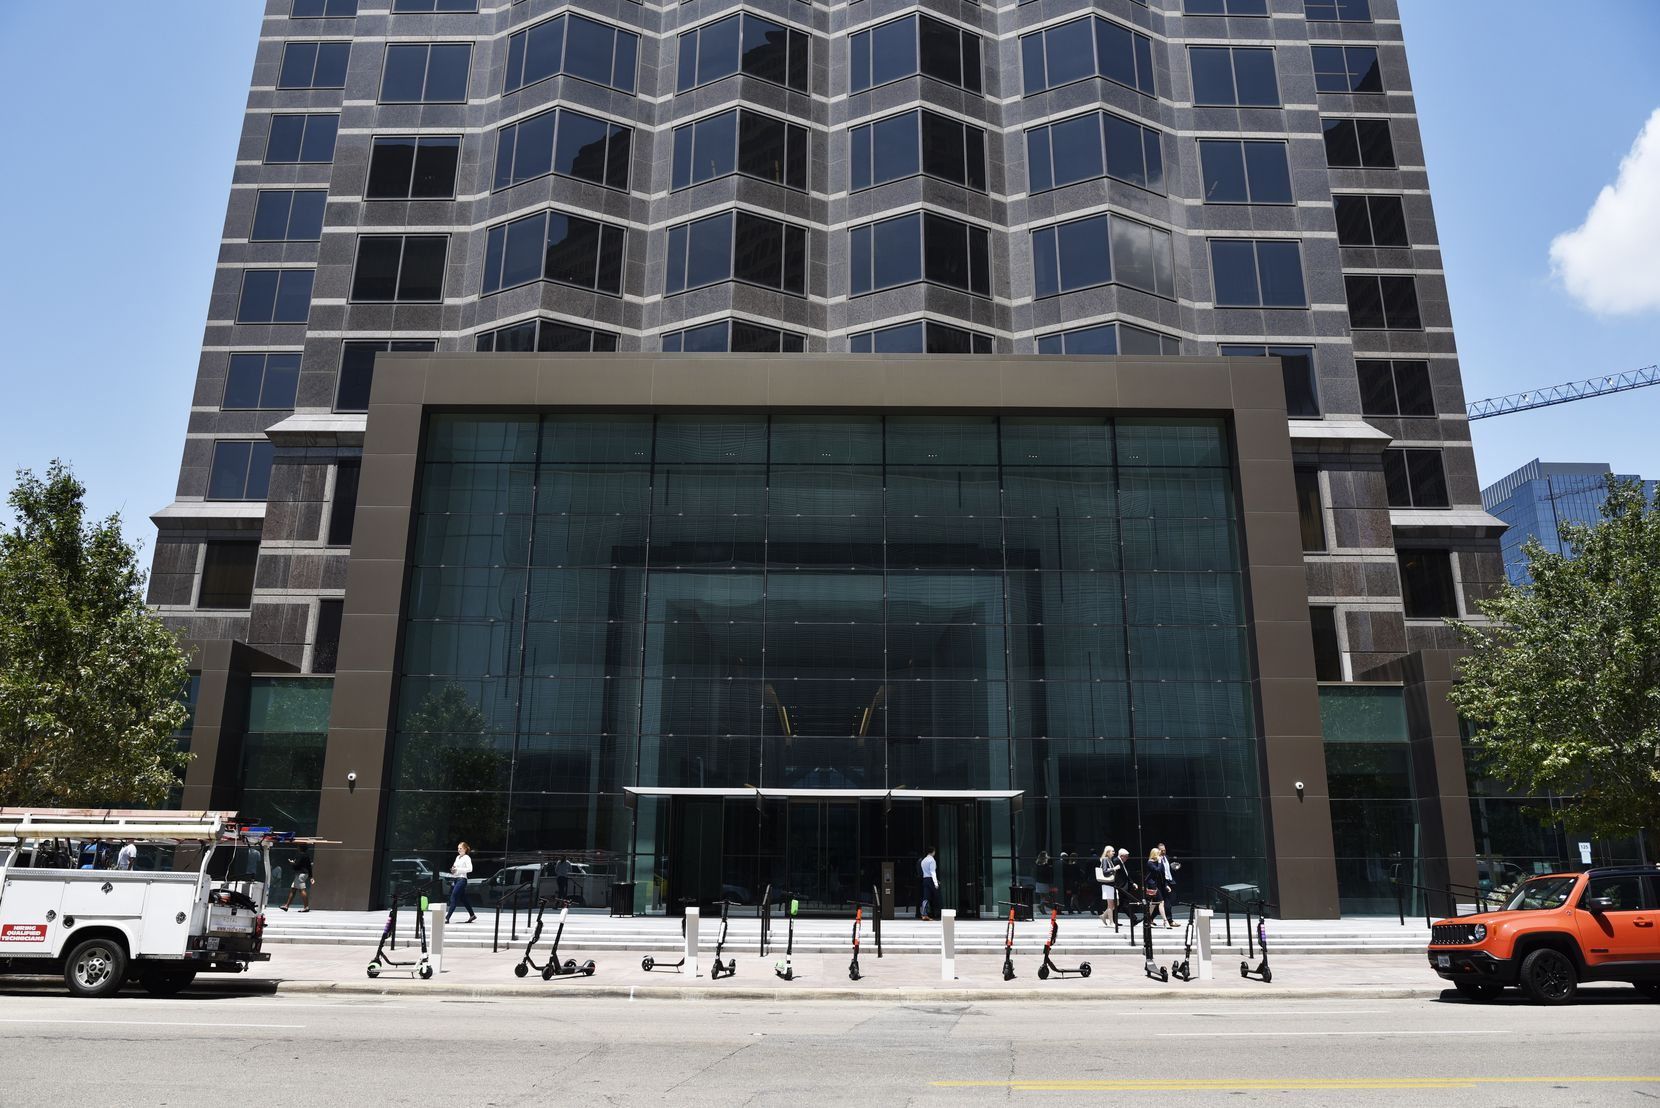 Goldman Sachs has more than 1,000 workers at the Trammell Crow Center on Ross Avenue in downtown Dallas.